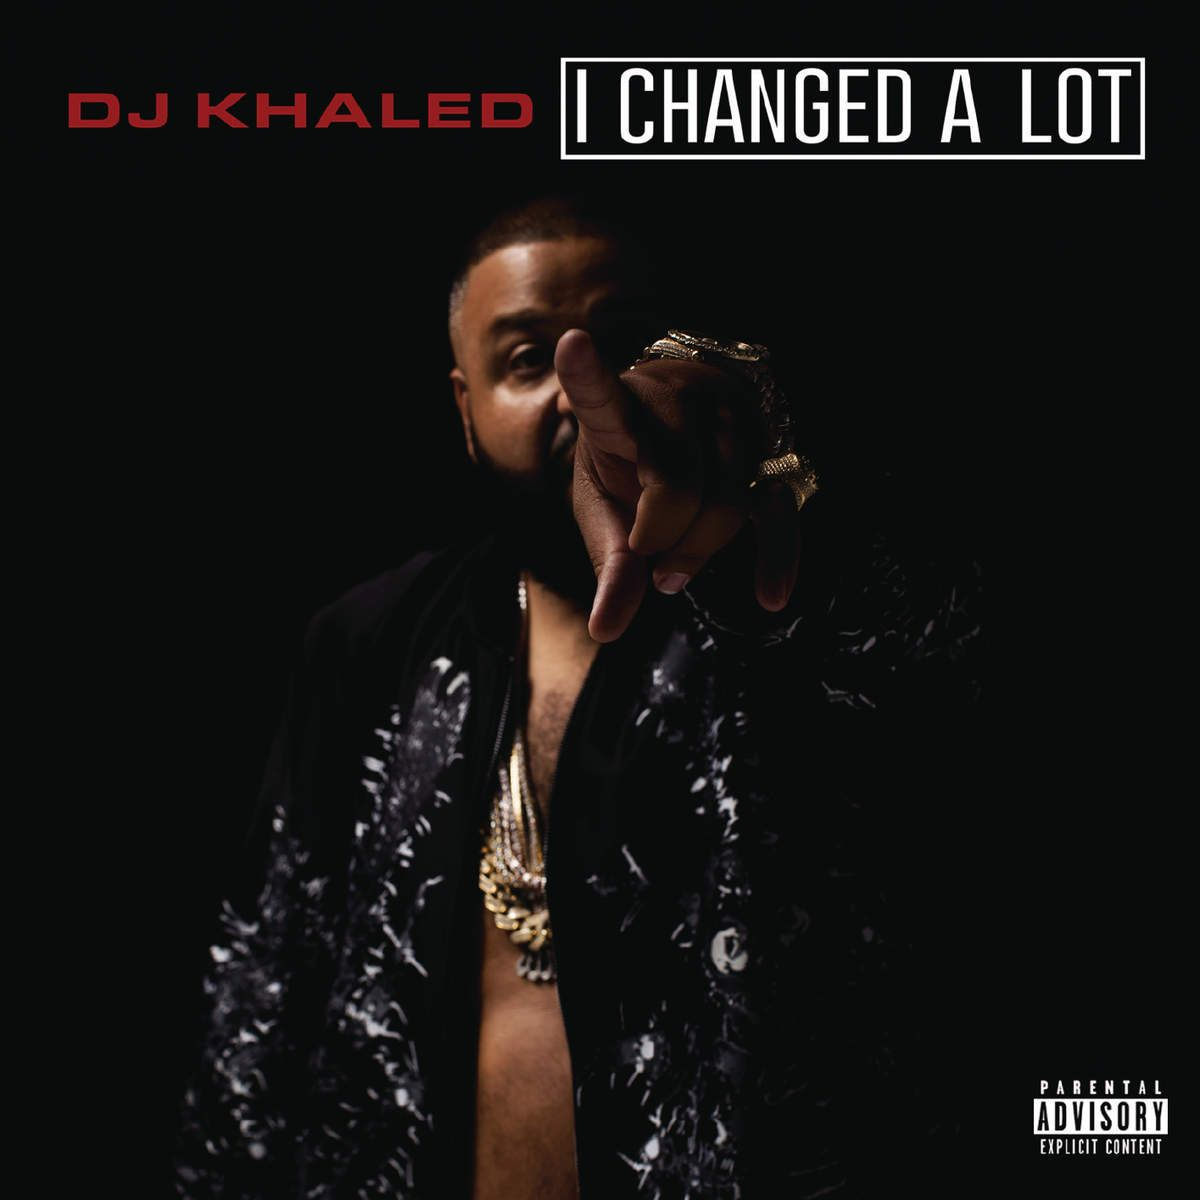 DJ Khaled - I Changed A Lot album cover